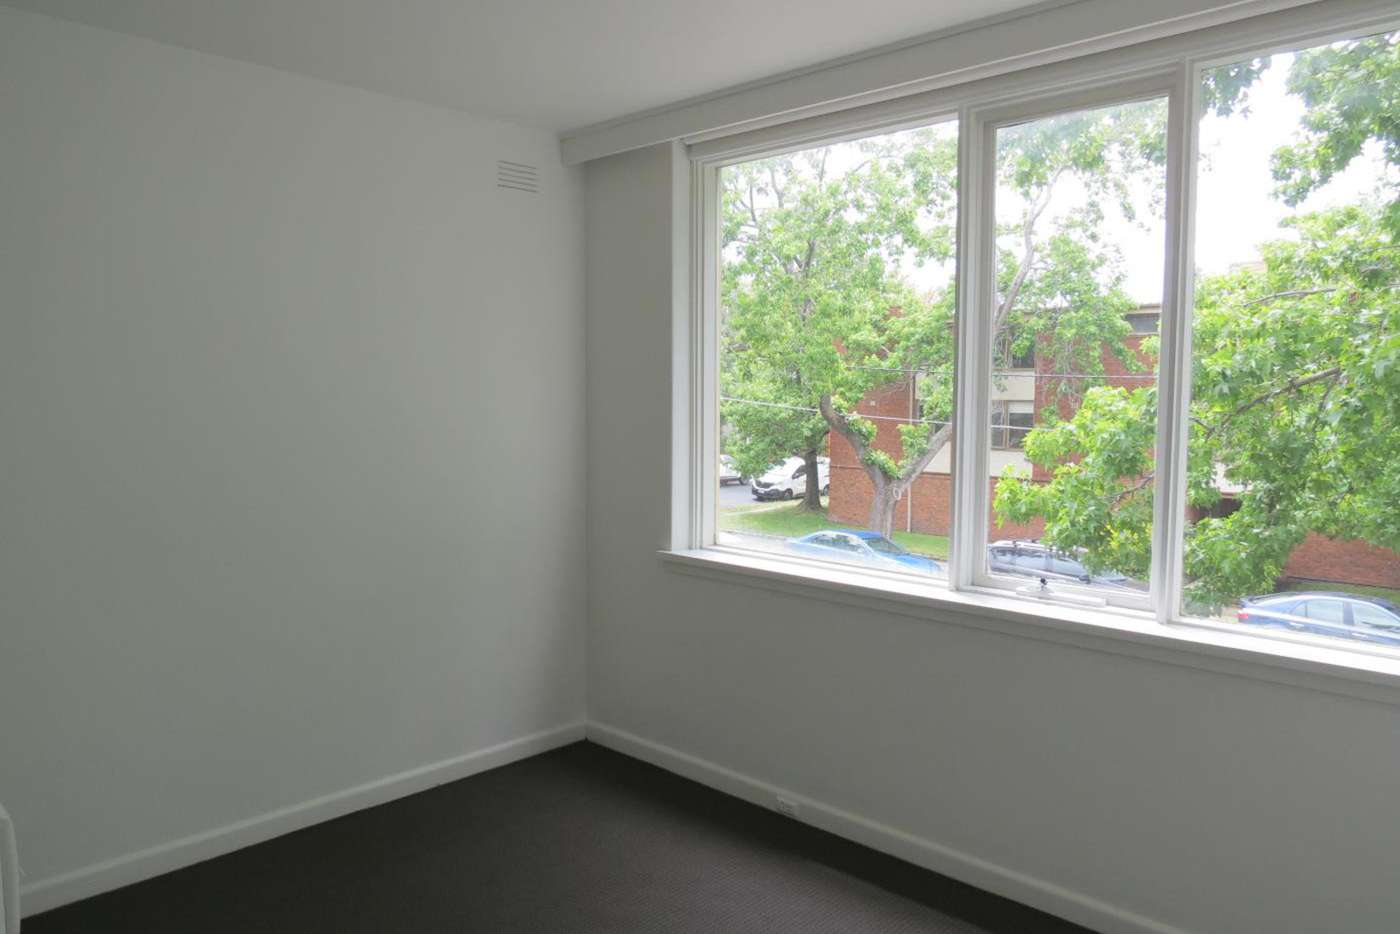 Sixth view of Homely unit listing, 6/22 Hughenden Road, St Kilda East VIC 3183